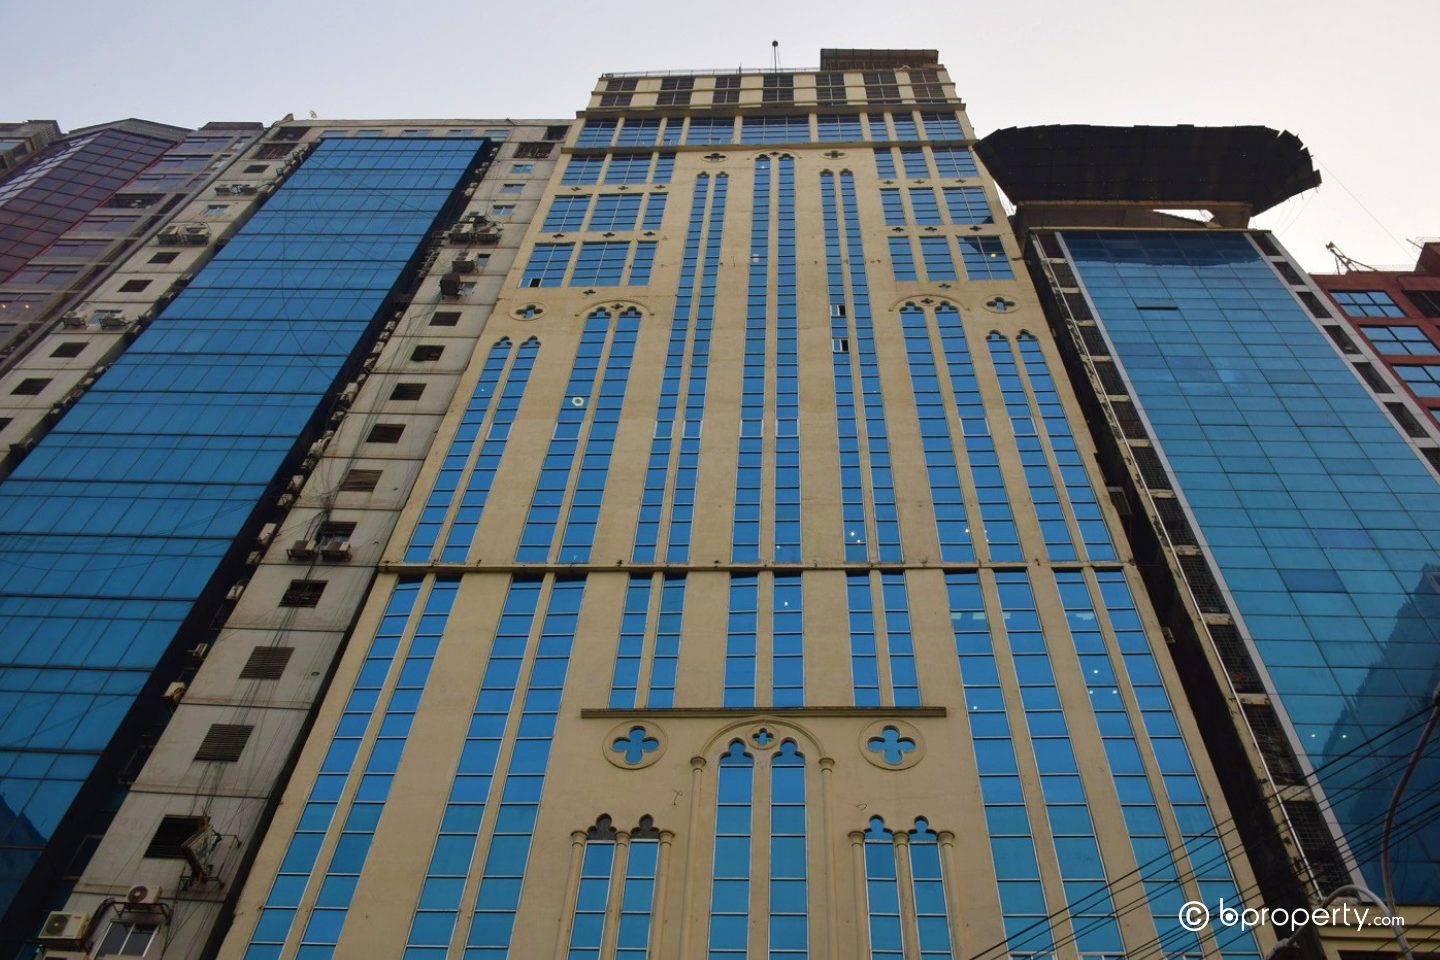 This building has reputation of being a top commercial real estate in Dhaka